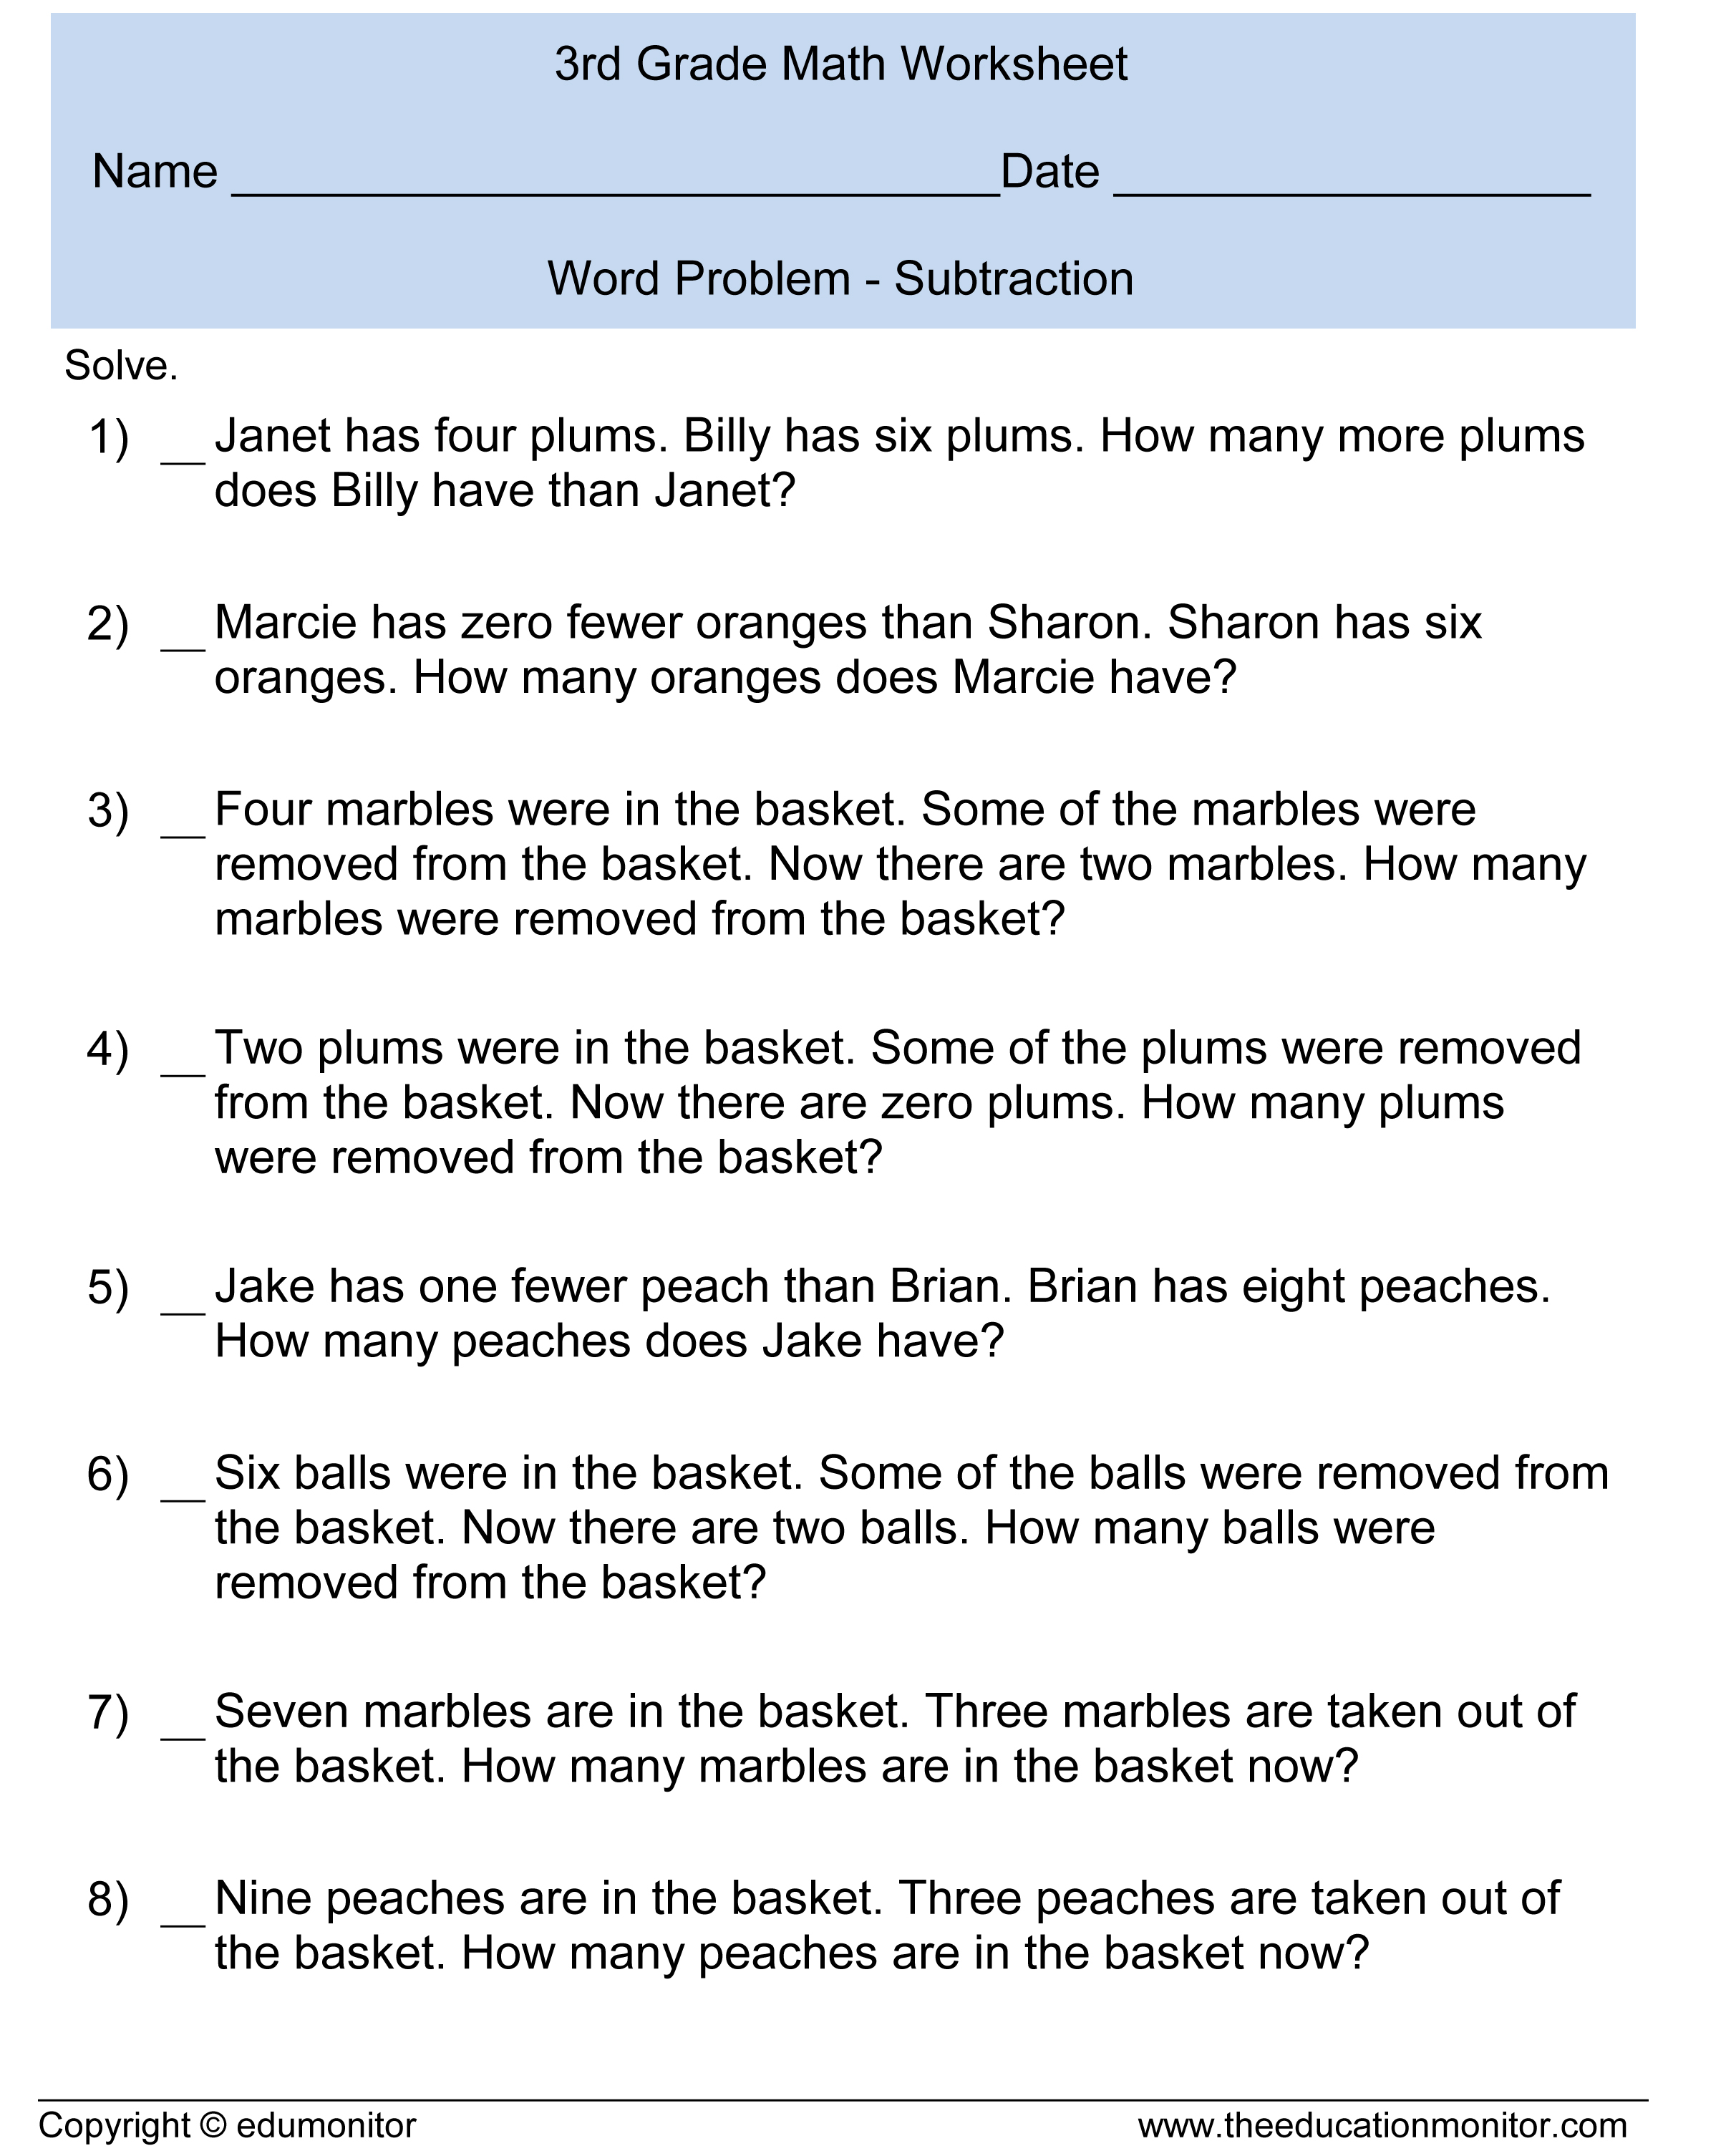 Worksheet Subtracting Fraction Problems adding and subtracting fractions word problems worksheet worksheetsfree printables